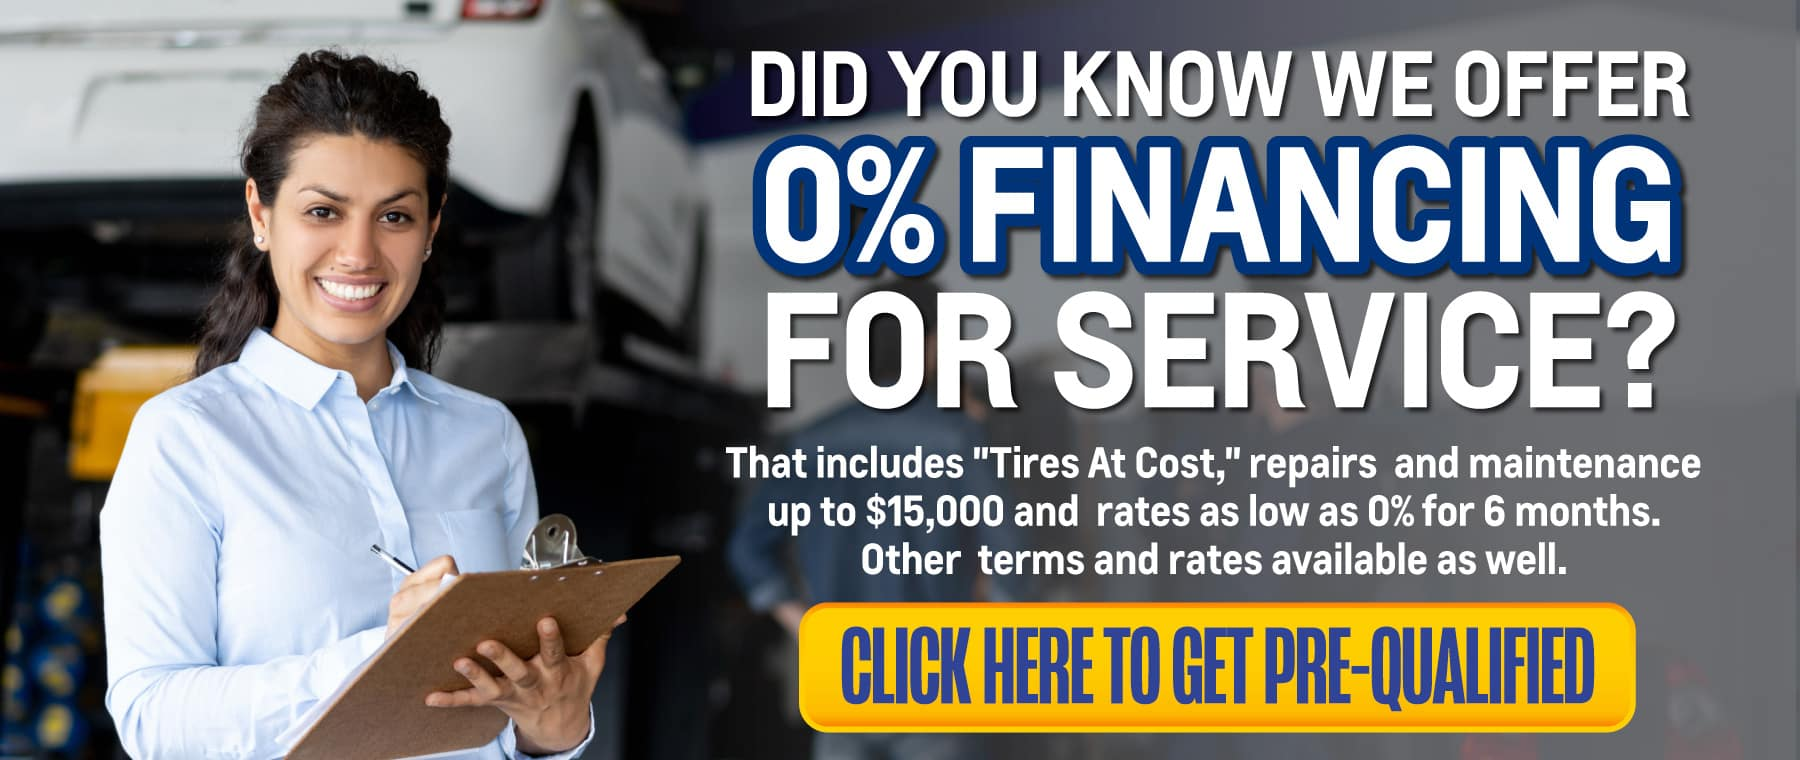 We offer 0% Financing for Service - Click to Get Pre-Qualified